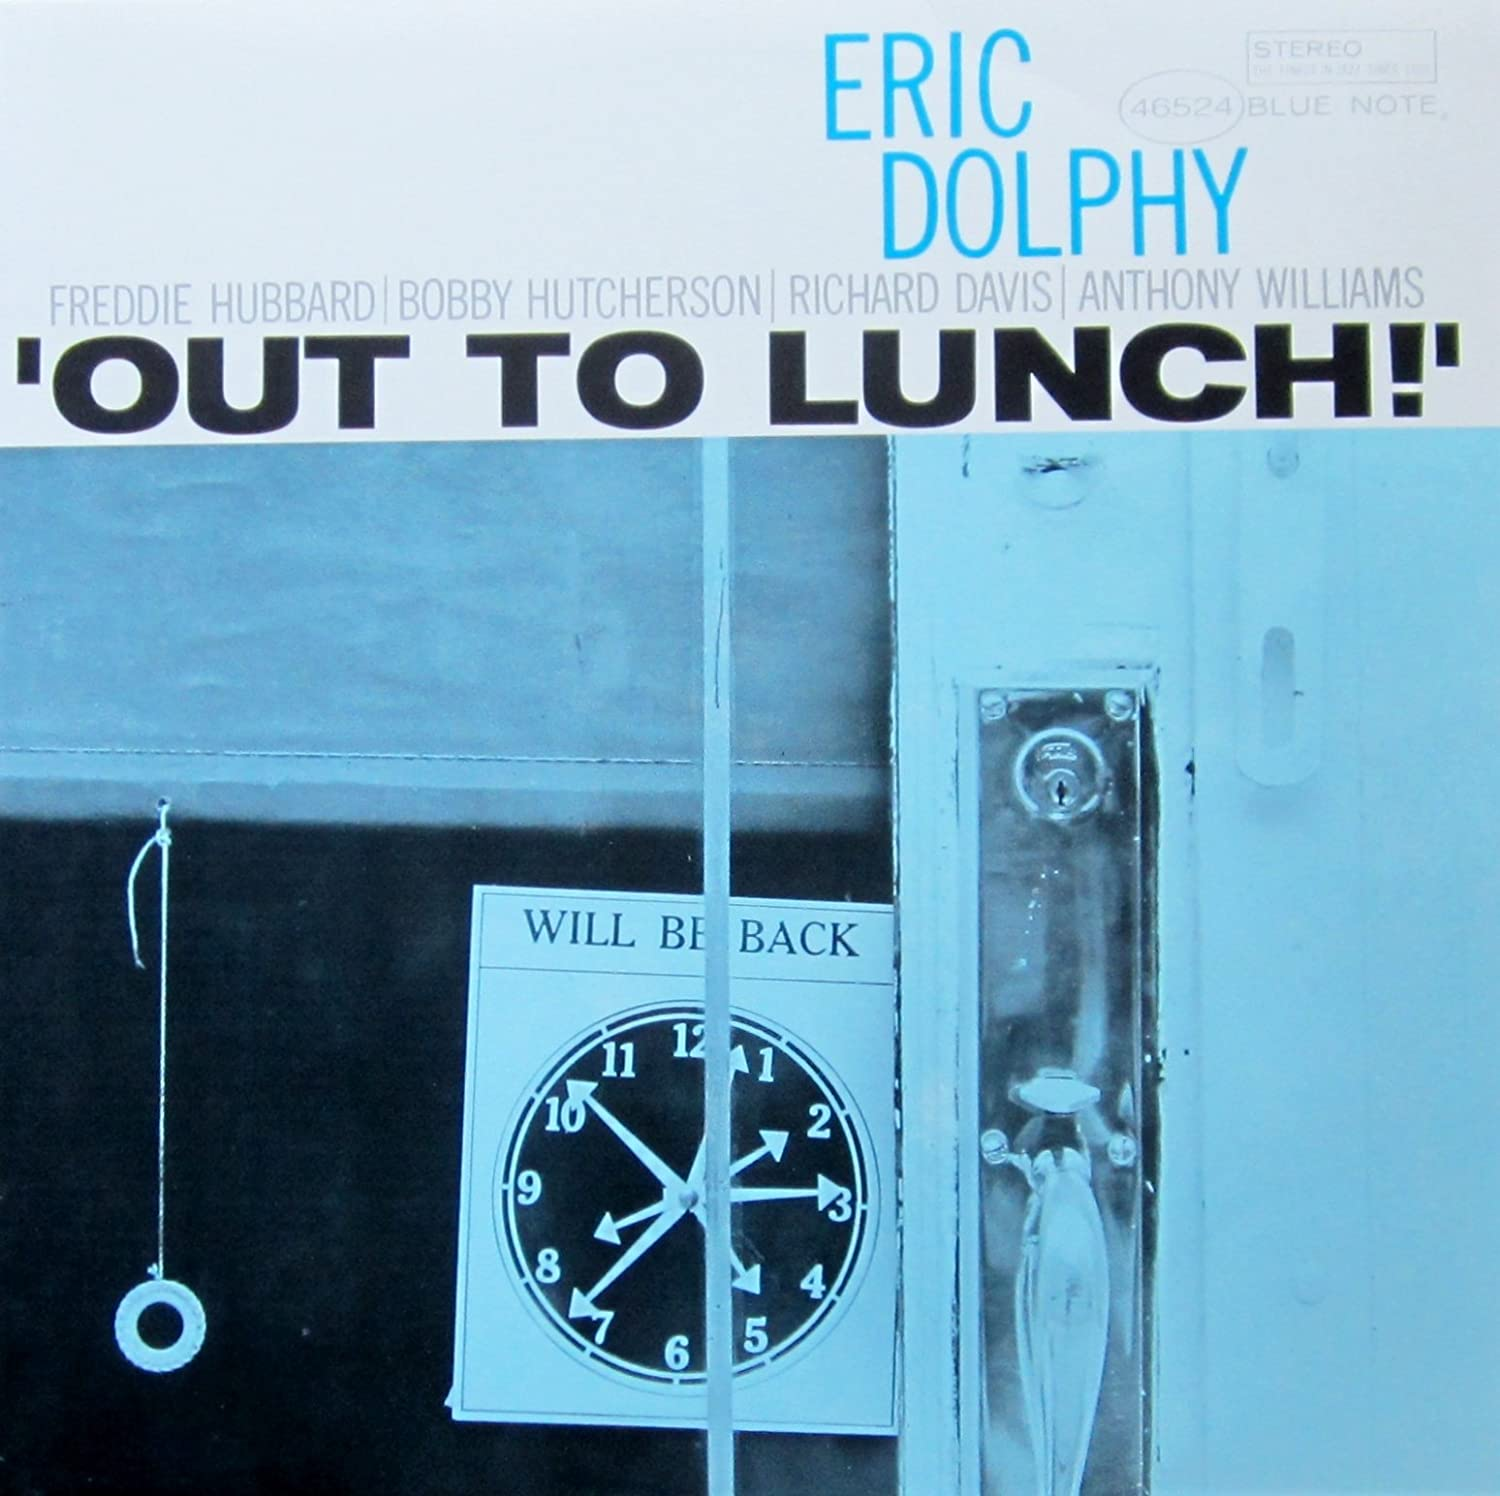 Dolphy, Eric - Out to Lunch [Vinyl] - Amazon.com Music